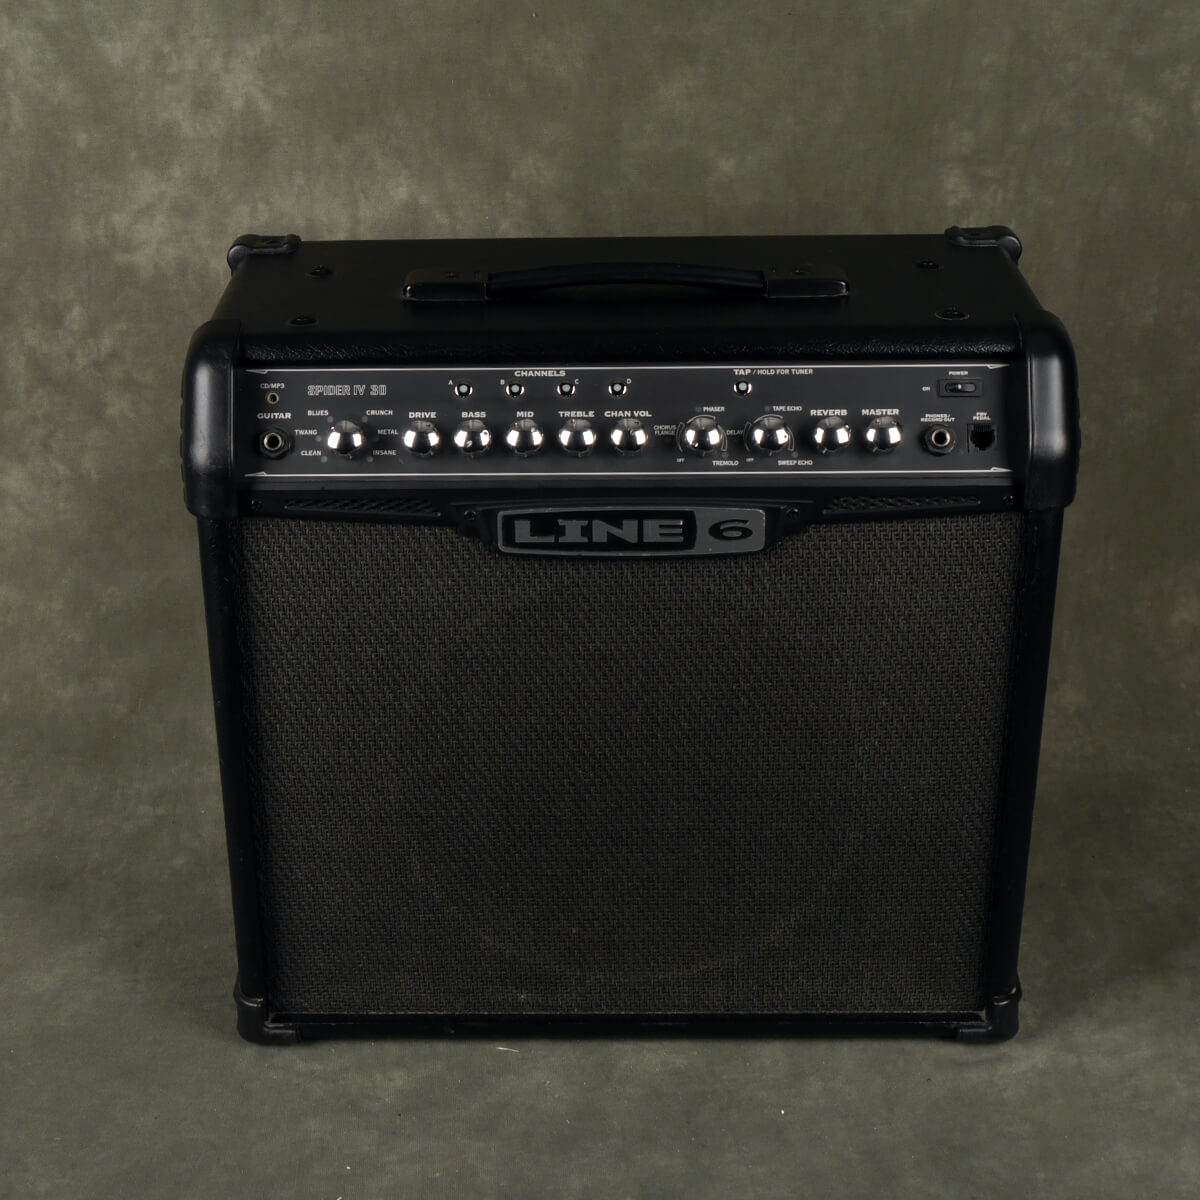 Line 6 Spider IV 30 Combo Amplifier - 2nd Hand